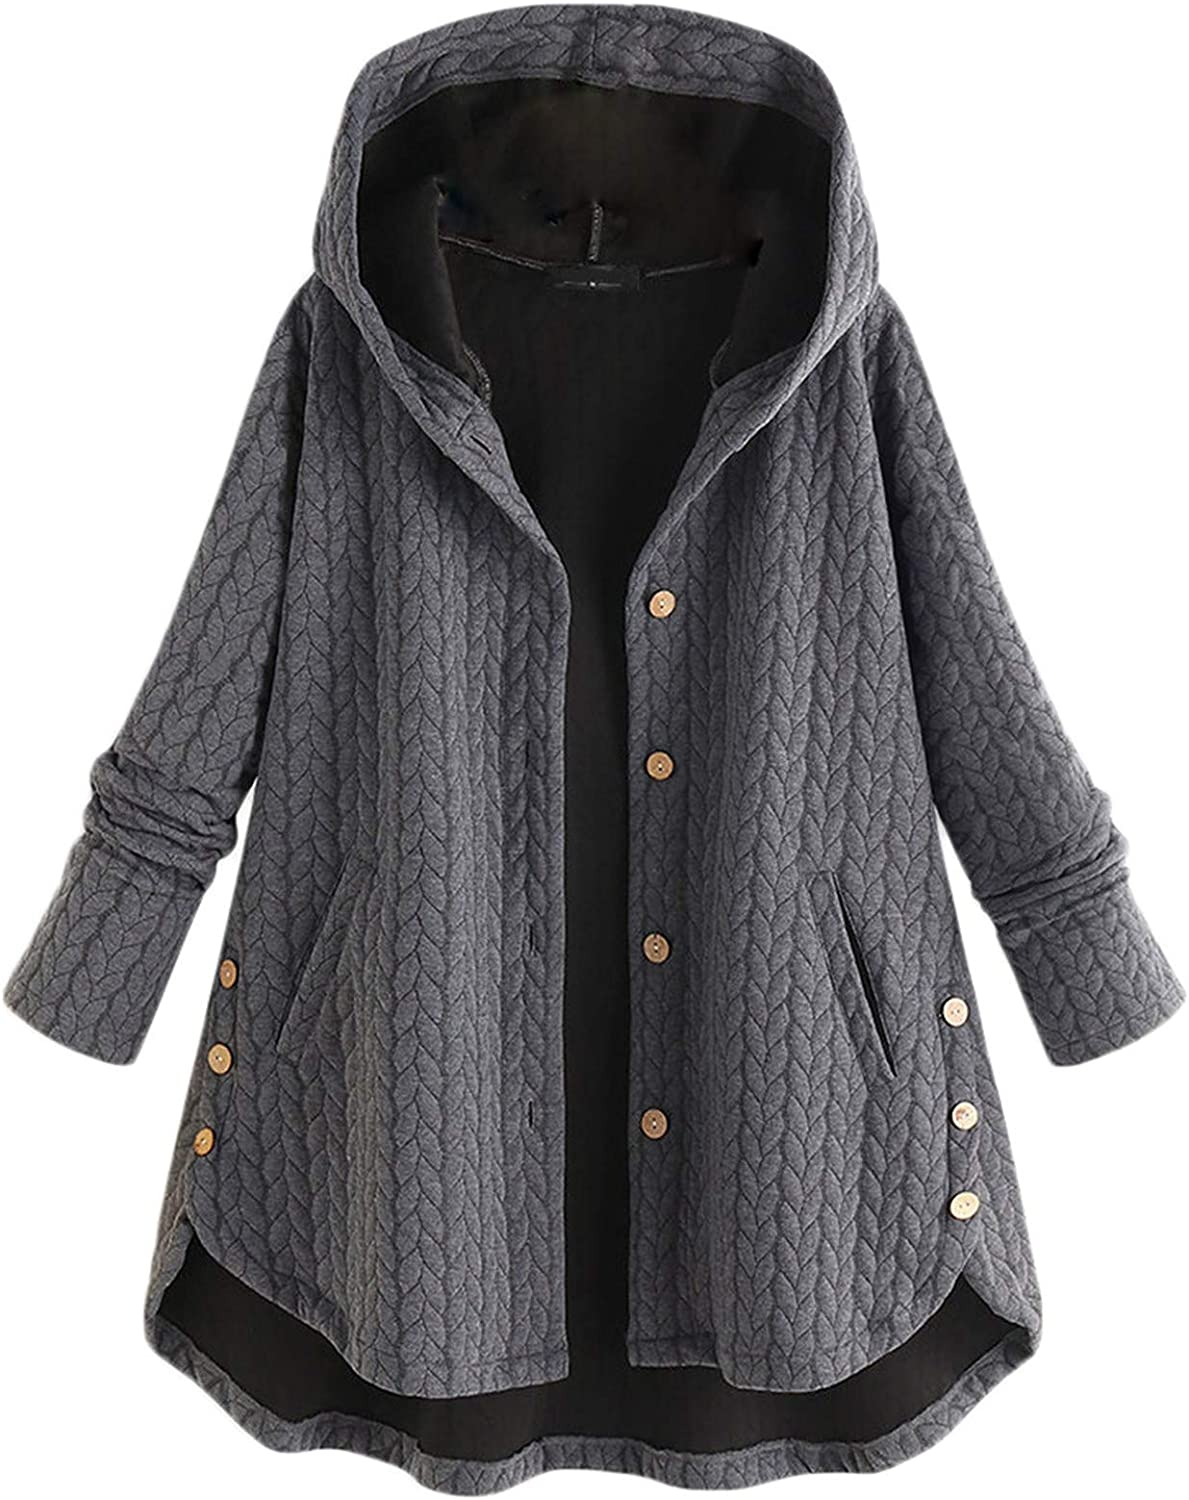 Andongnywell Women's Corduroy Coats Long Sleeve Button Down with Pockets Cotton Corduroy Hooded Cotton Jacket